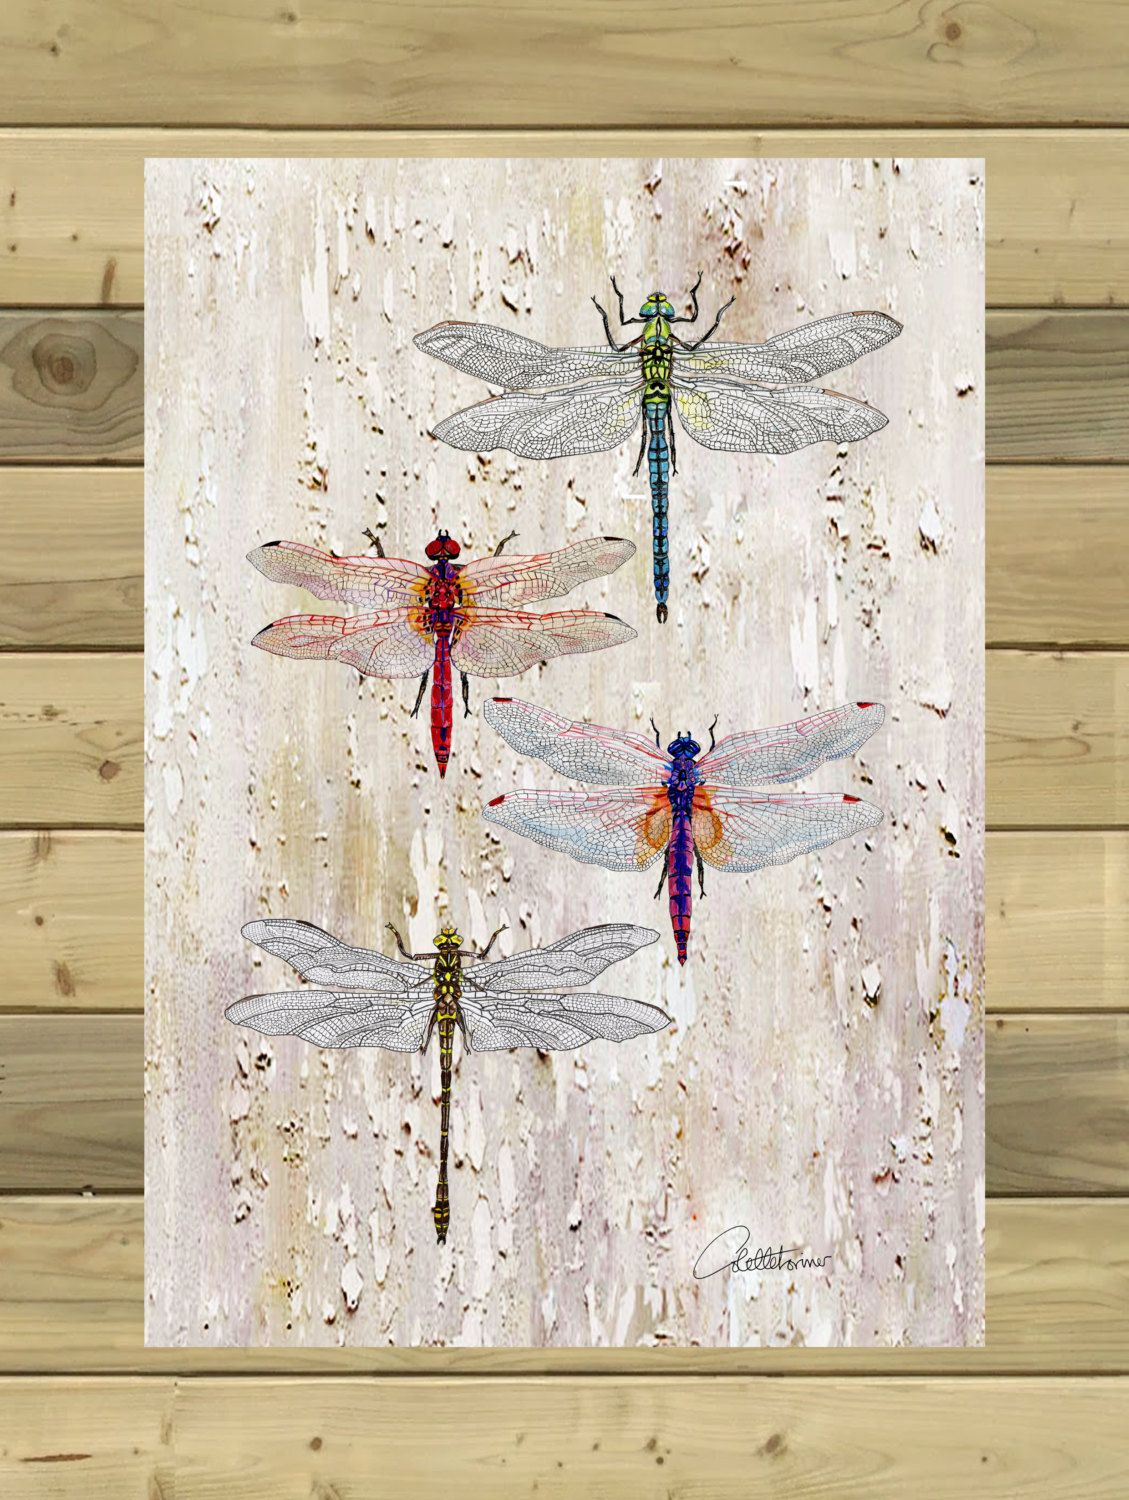 Dragonflies Wall Decor Dragonflies Print Dragonfly Illustration Dragonfly Design Wall Art